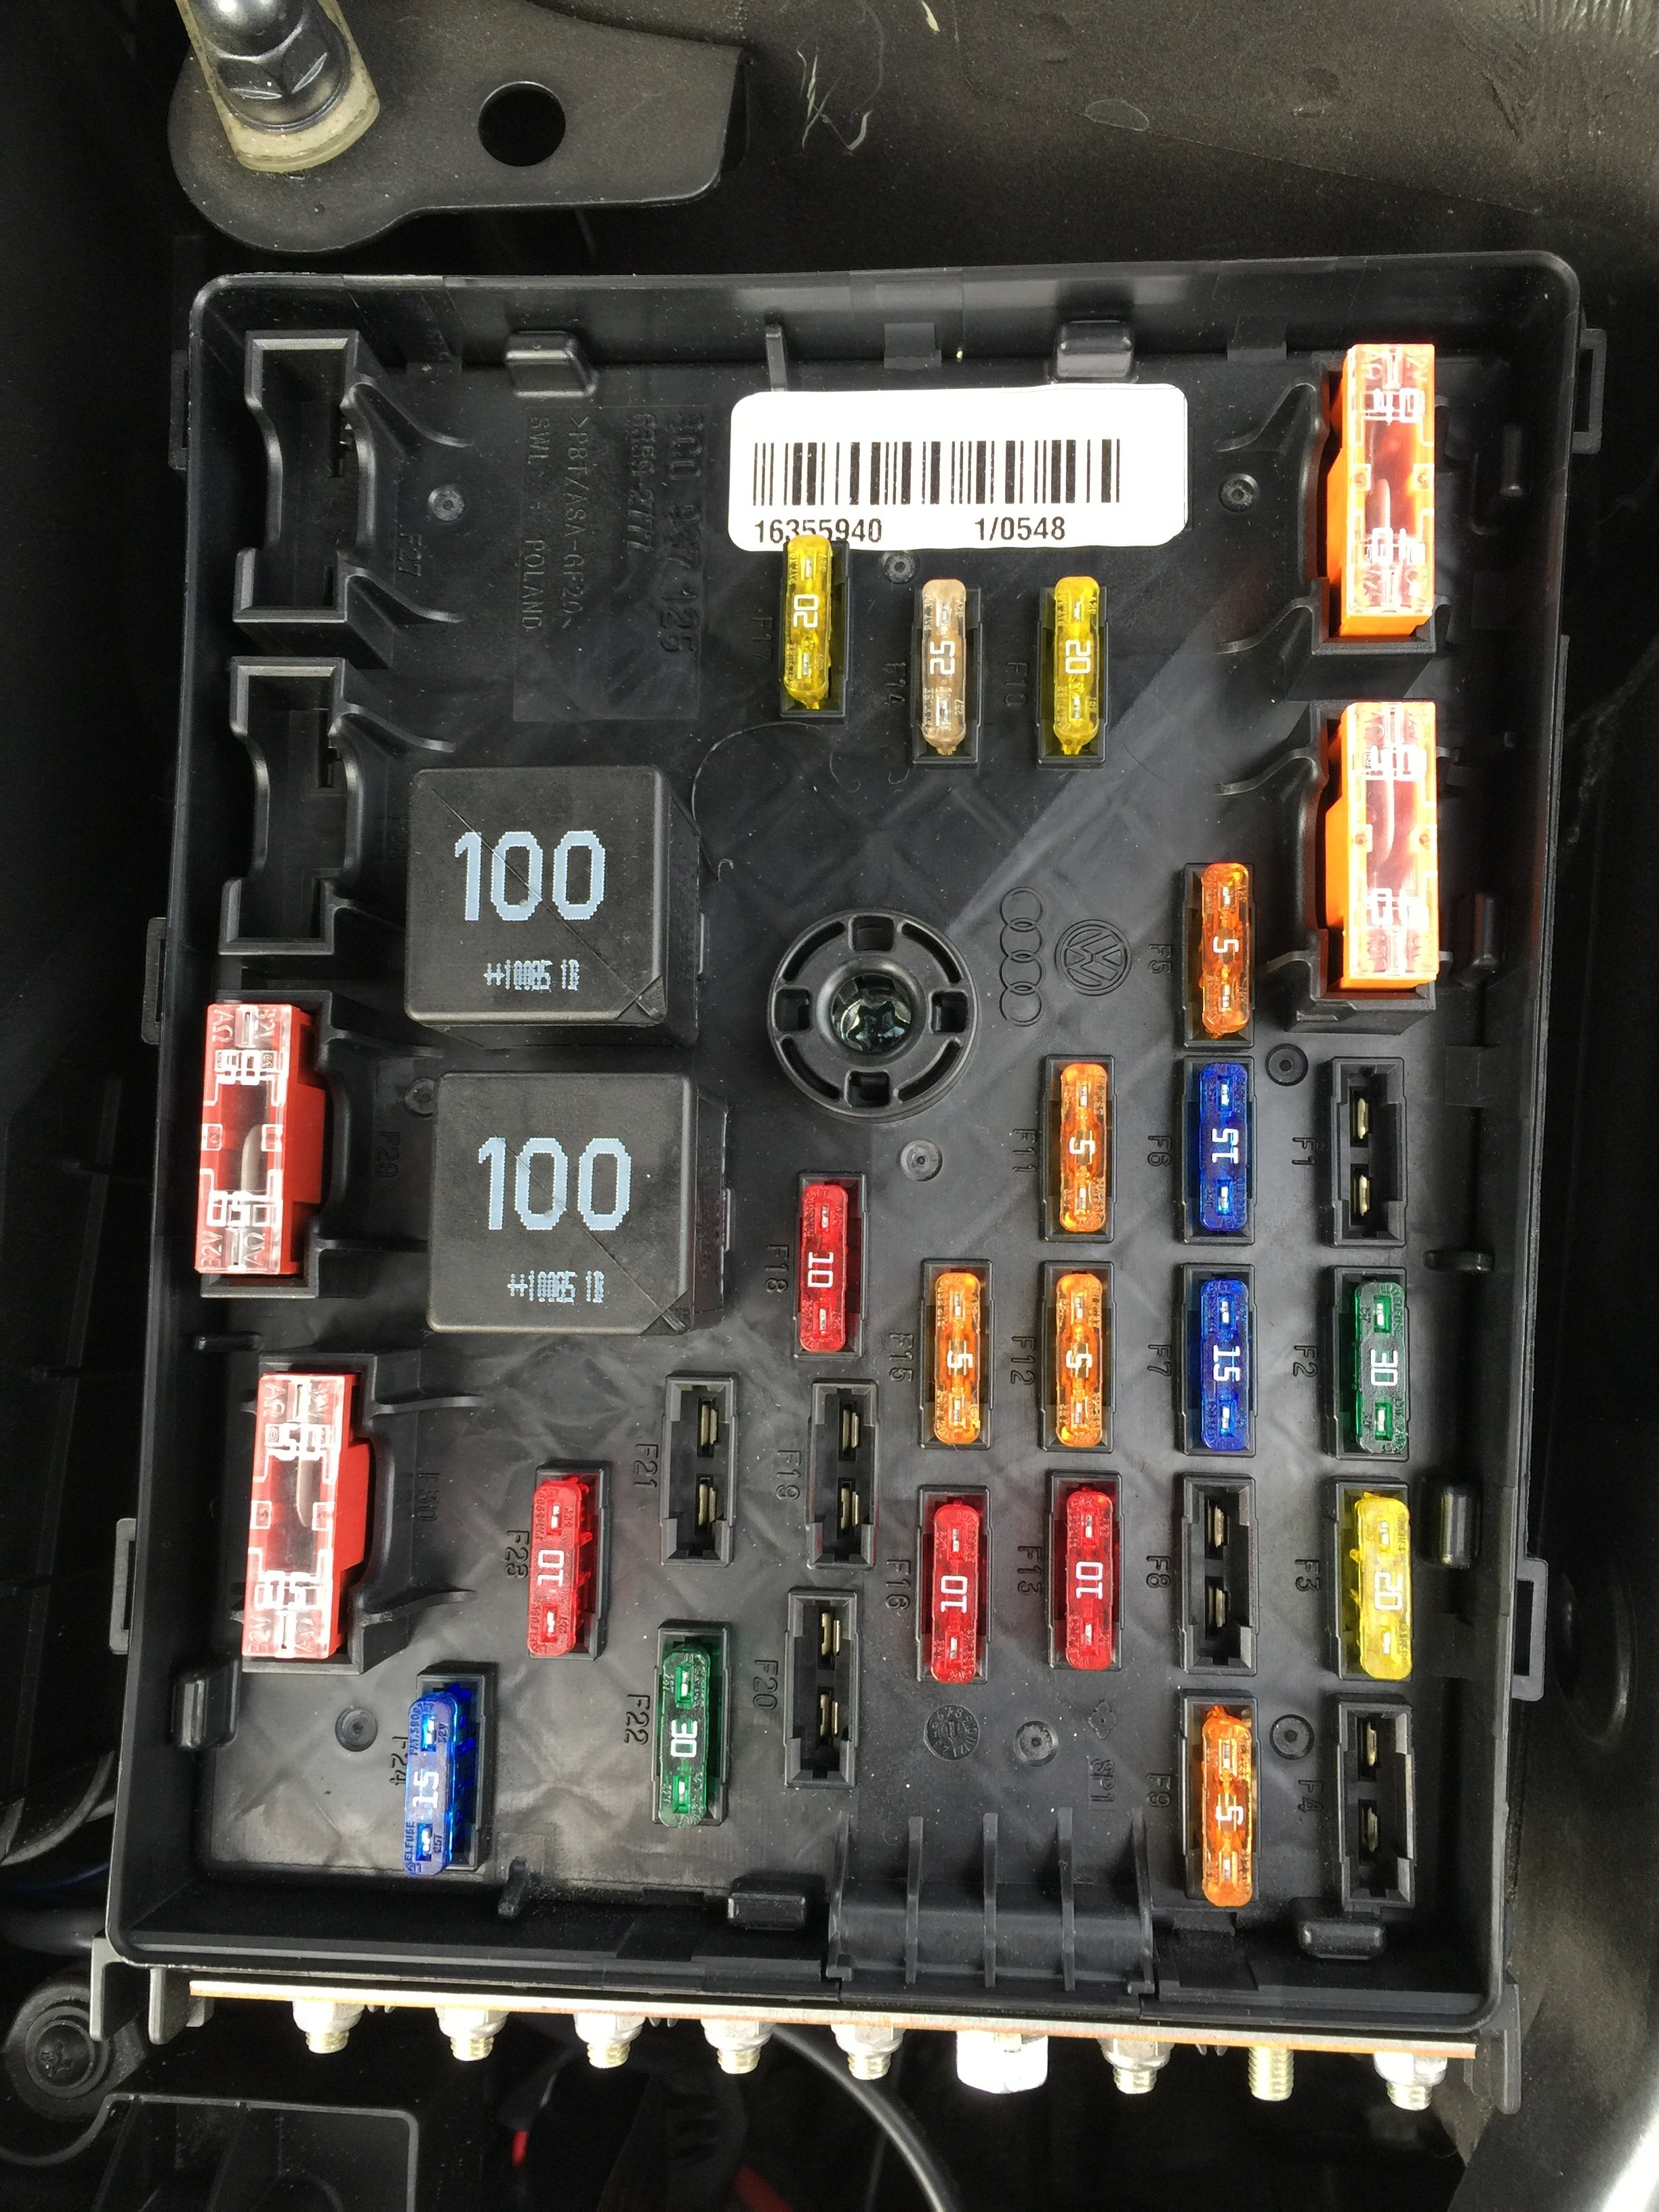 2010 Vw Cc Fuse Box Diagram Change Your Idea With Wiring 2012 Volkswagen Jetta Location Diagrams Fuses Library Rh 37 Codingcommunity De Passat Komfort